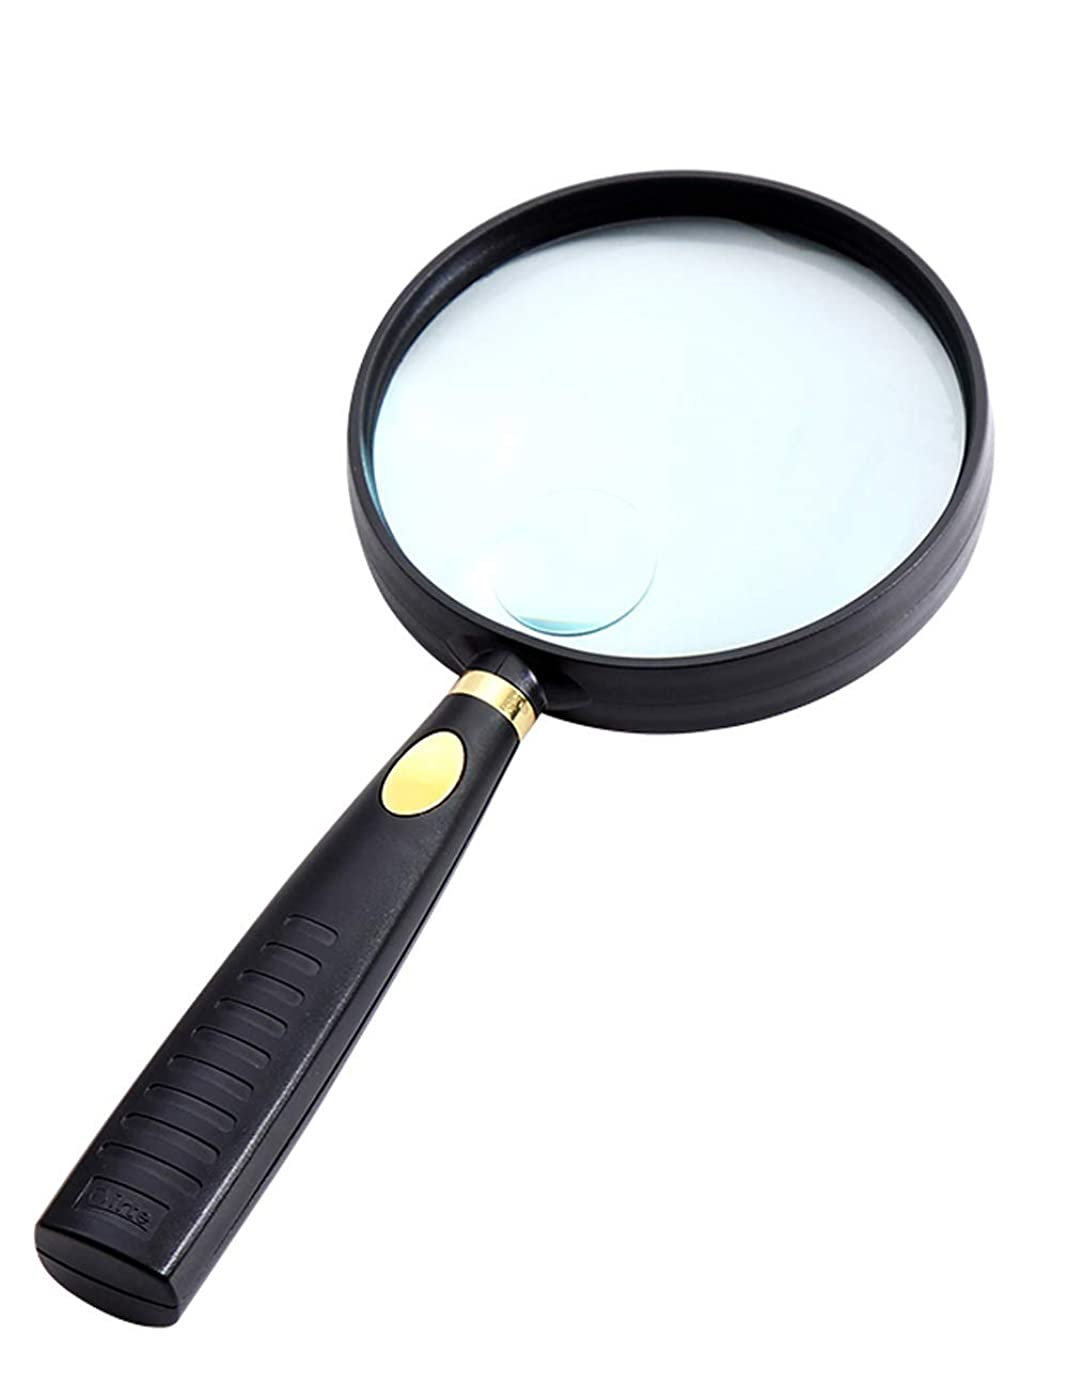 Ajhgqejfw Unknown Handheld 10 Times Magnifying Glass 20 Times Old Man high-Definition high-Power Optical Lens Reading Reading 90MM (Color : -, Size : -)